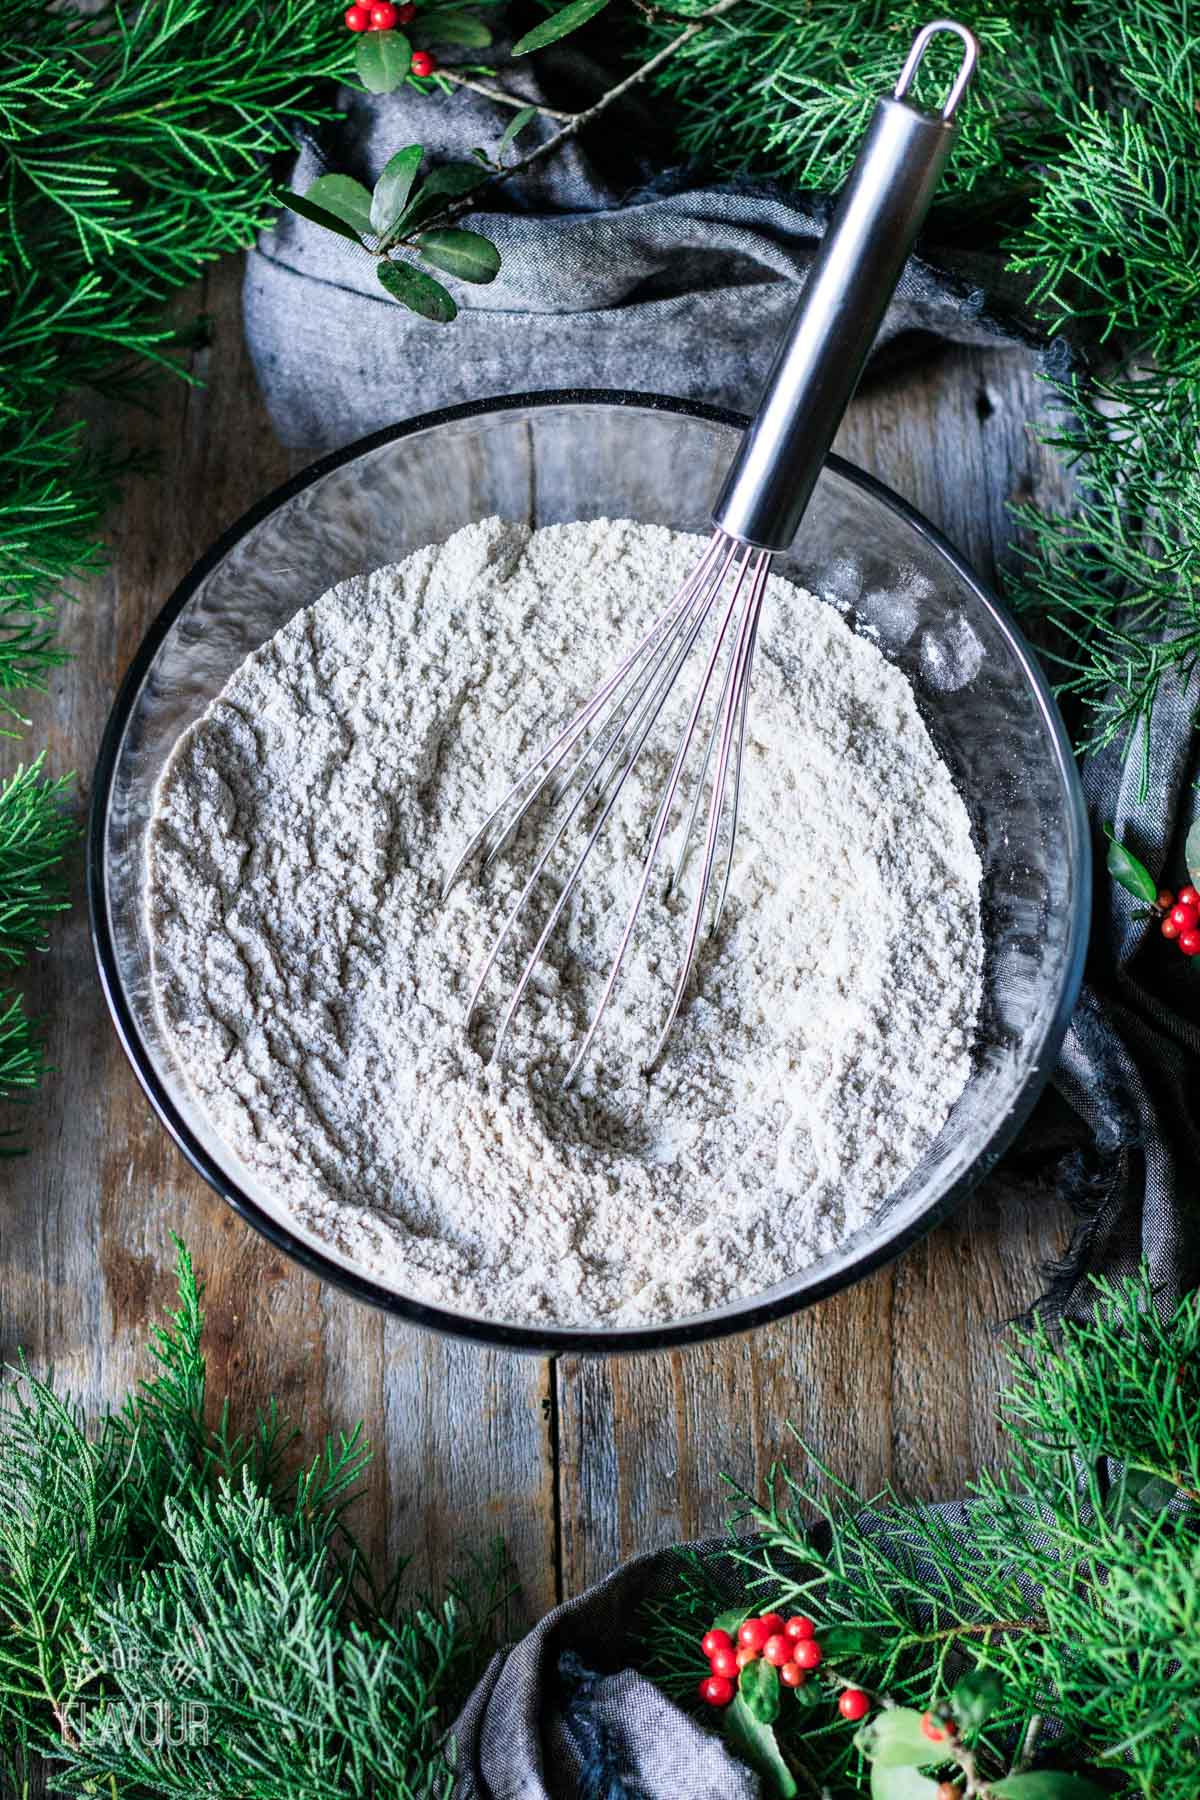 whisked flour and spice mixture in a glass bowl